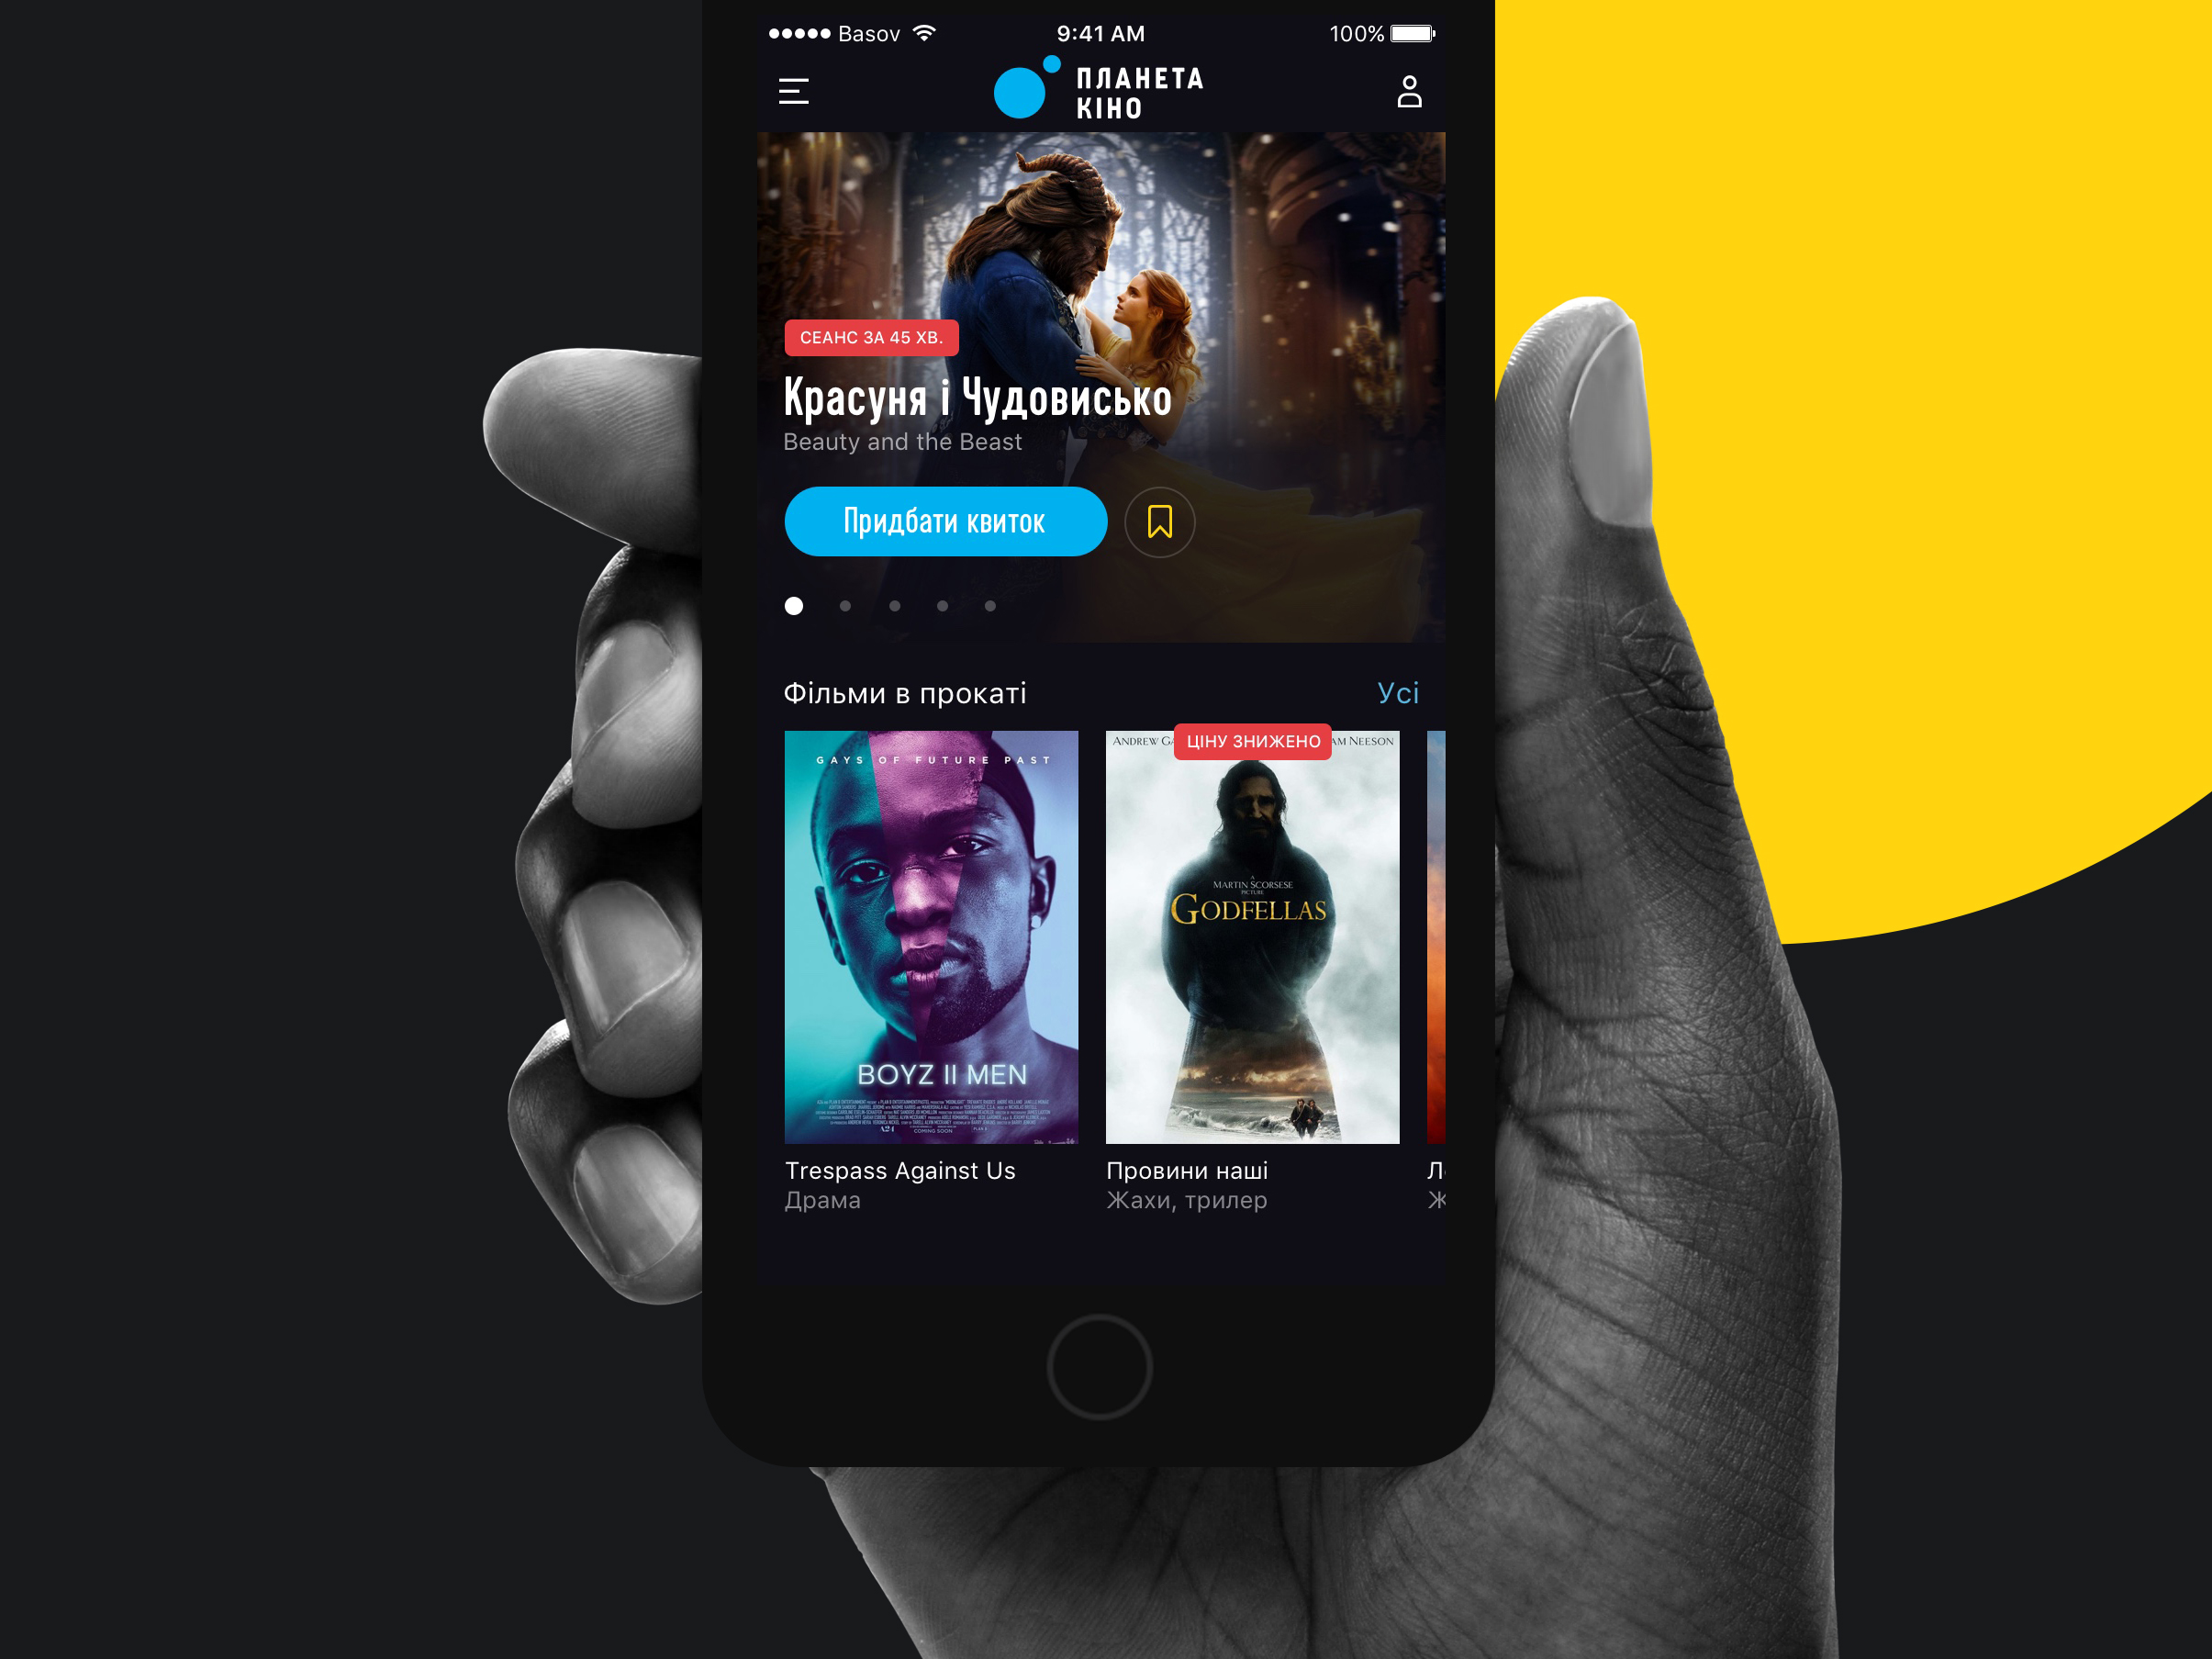 Planeta Kino_Mobile app_ios_by_basov_design